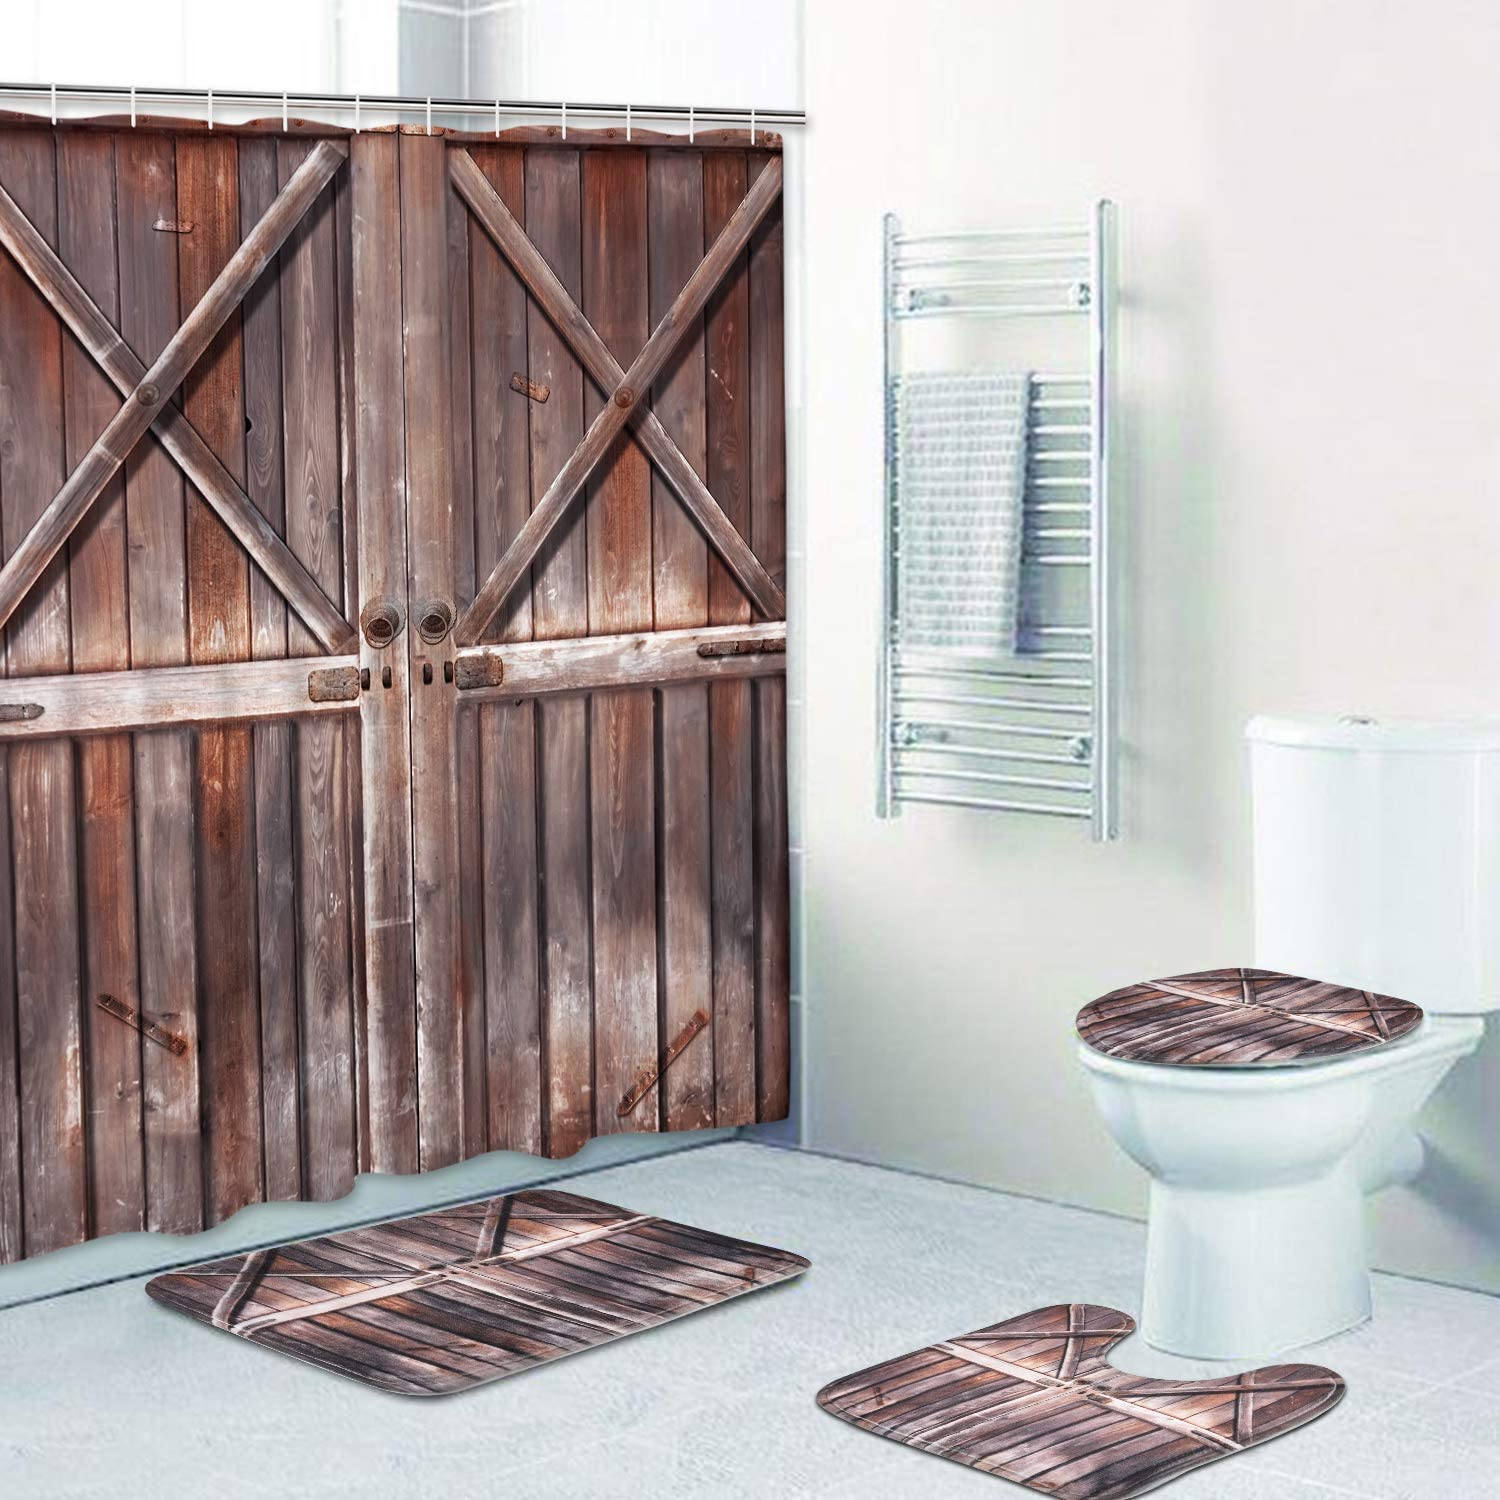 4PCS Rustic Wood Farm House Shower Curtains Sets with Toilet Cover Rugs Bath Mat